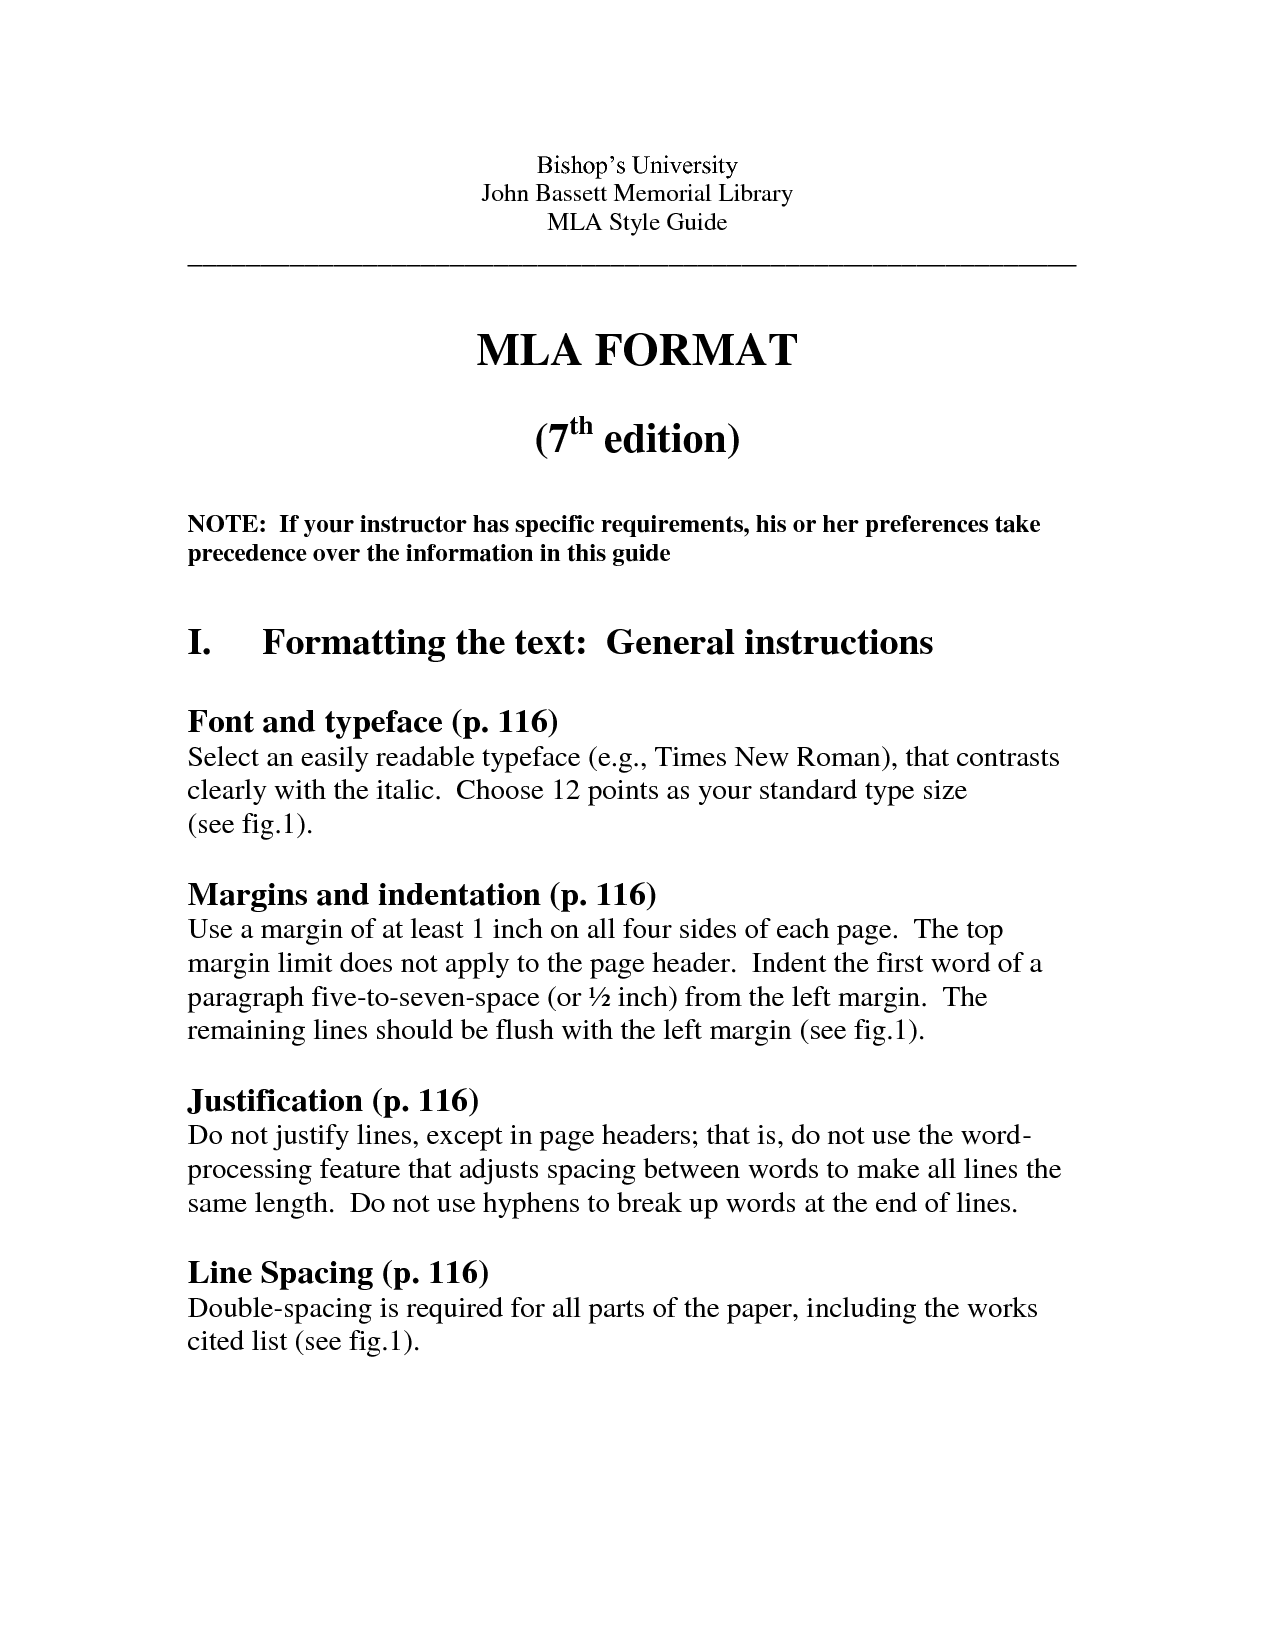 How to embed quotes in essays mla